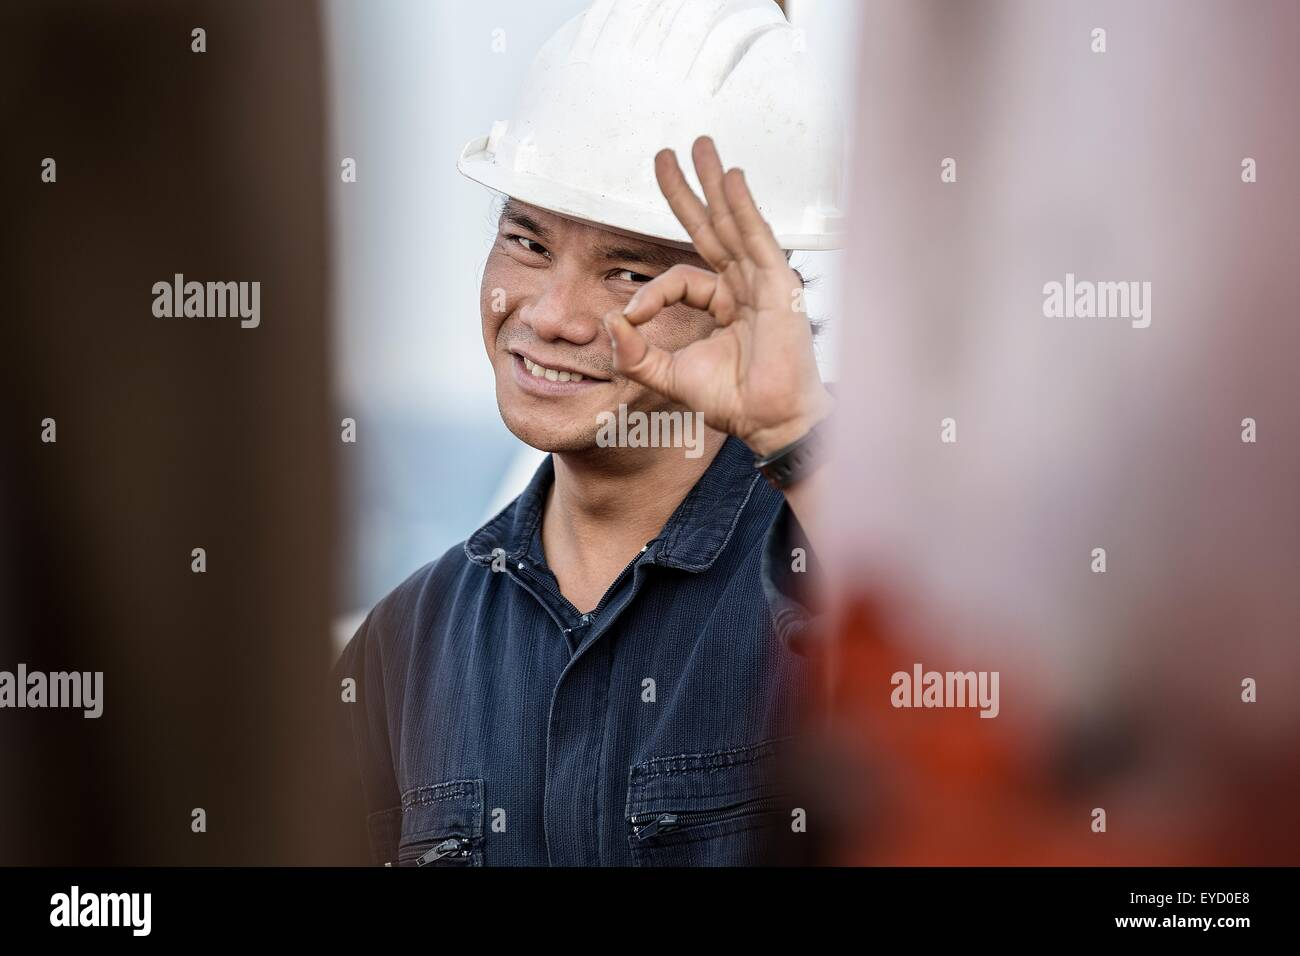 Portrait of worker on oil tanker making ok gesture - Stock Image